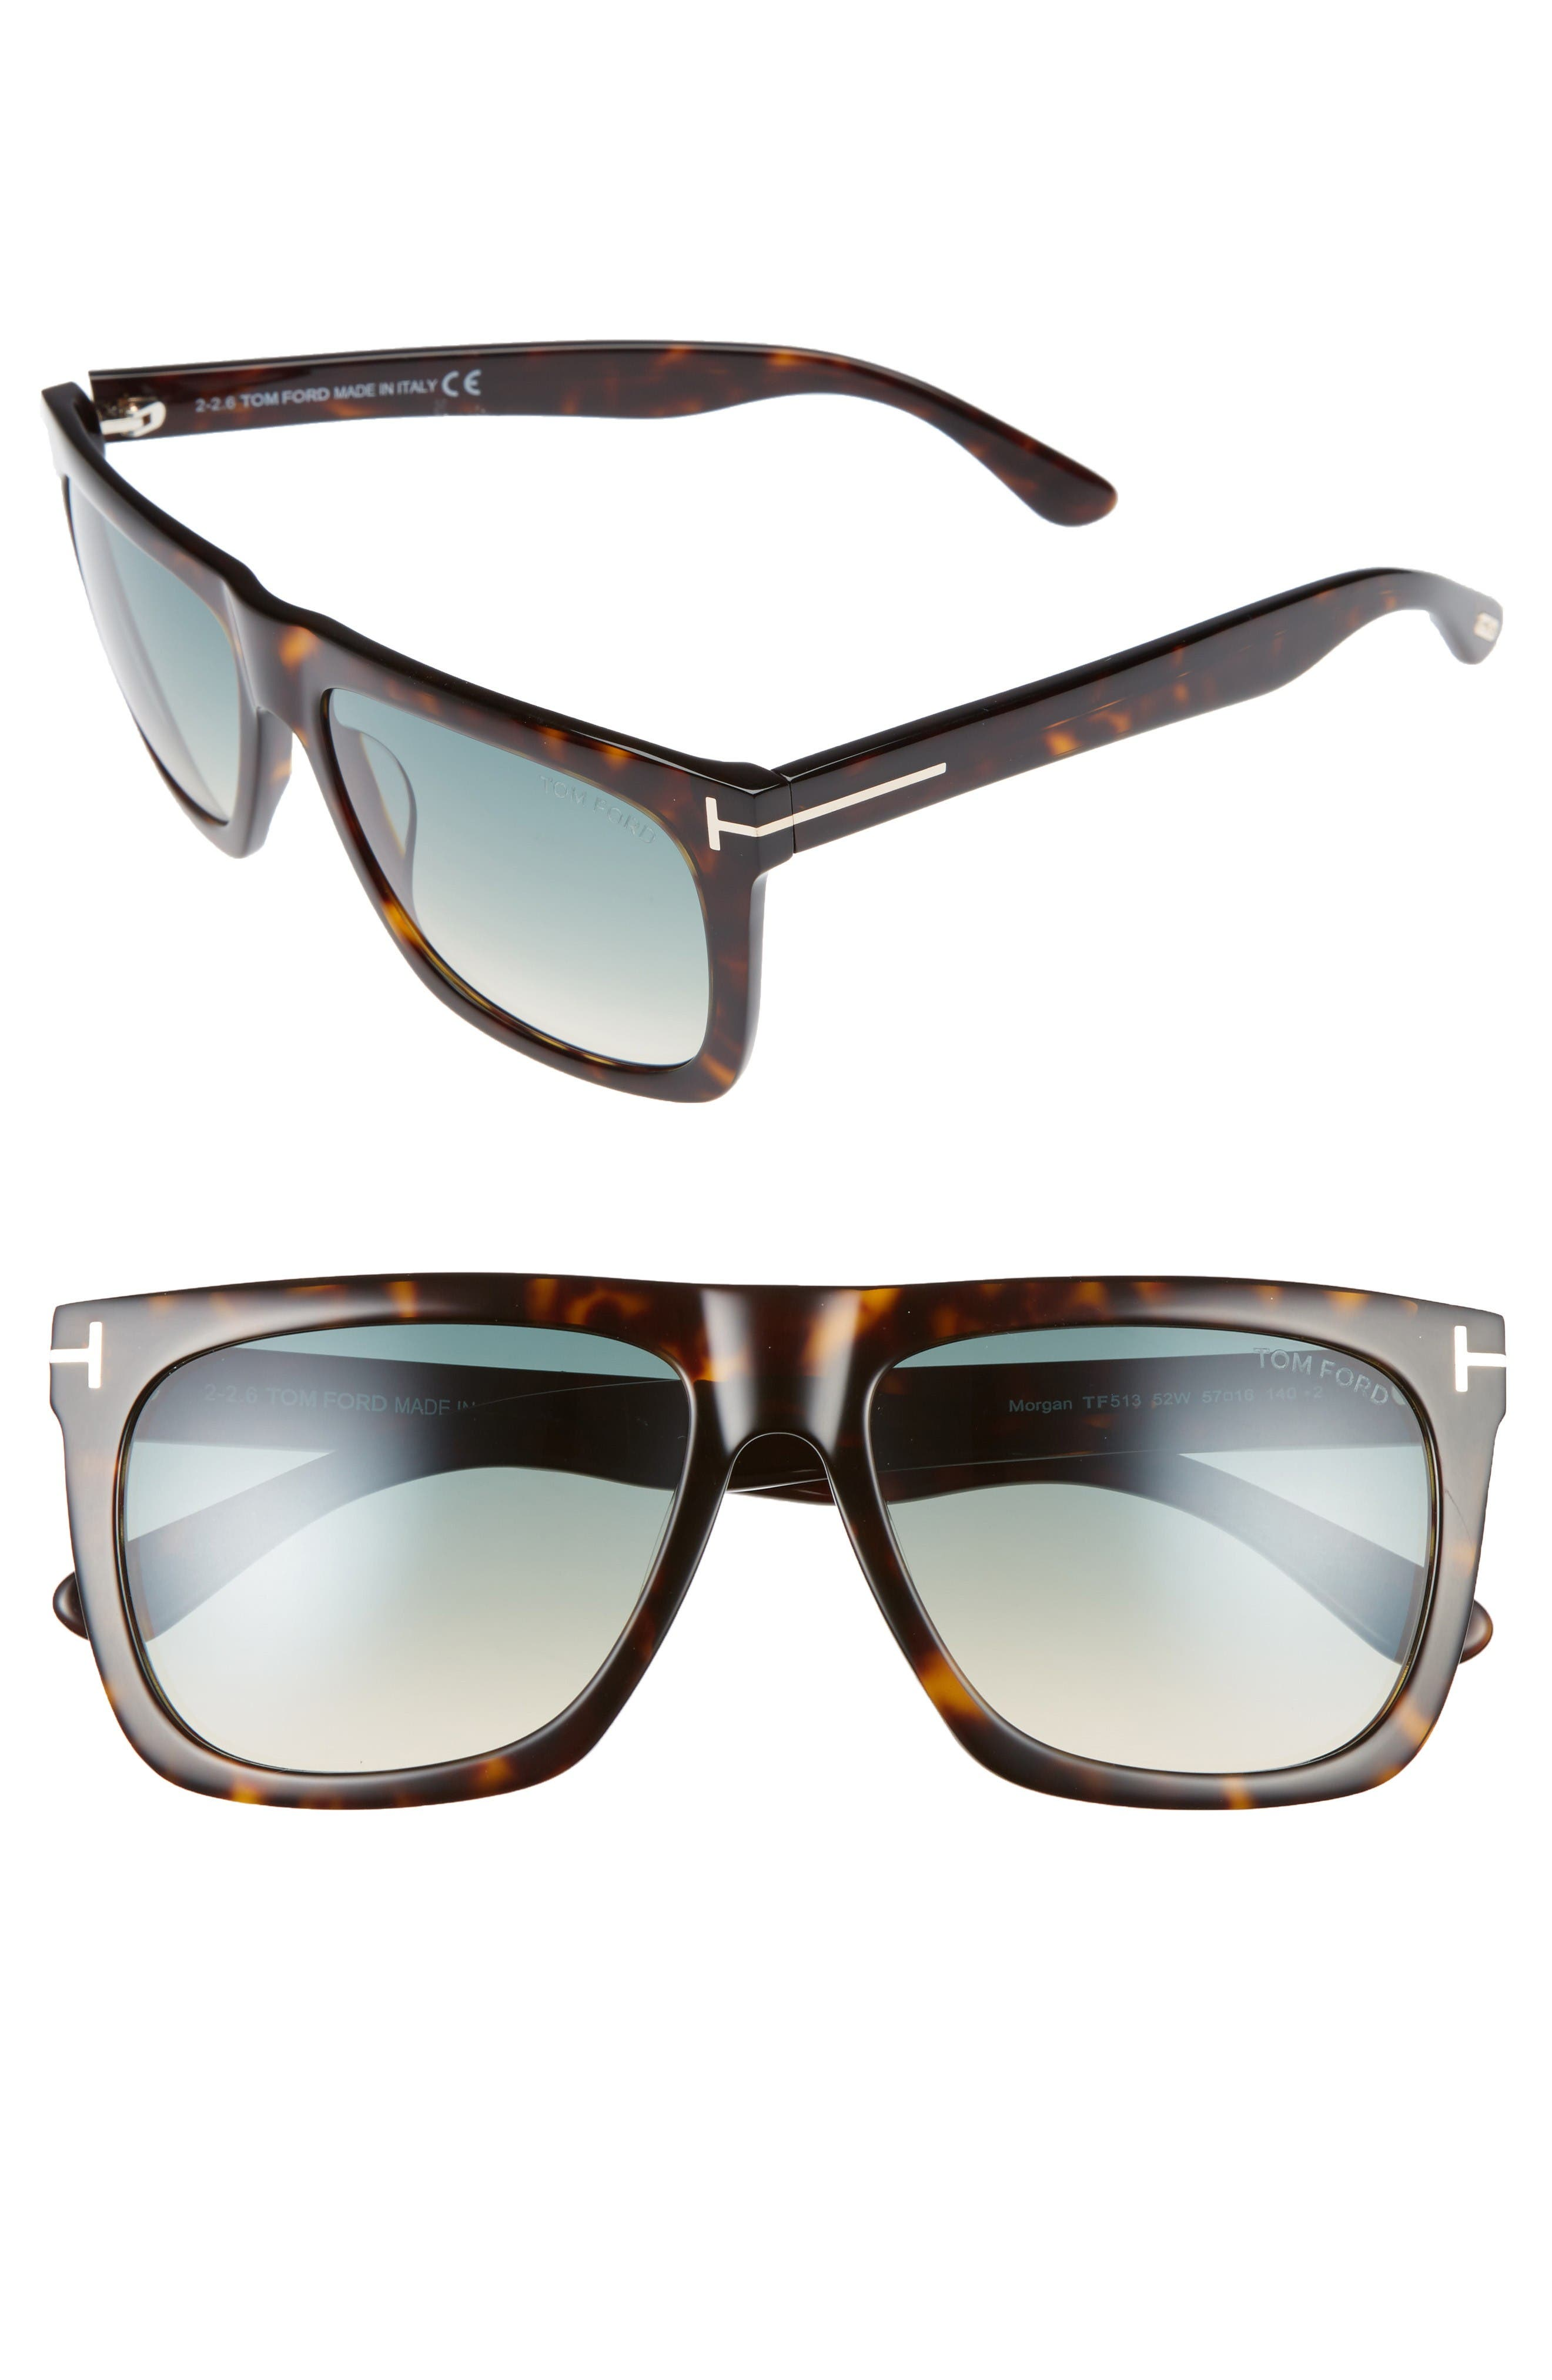 Alternate Image 1 Selected - Tom Ford Morgan 57mm Sunglasses